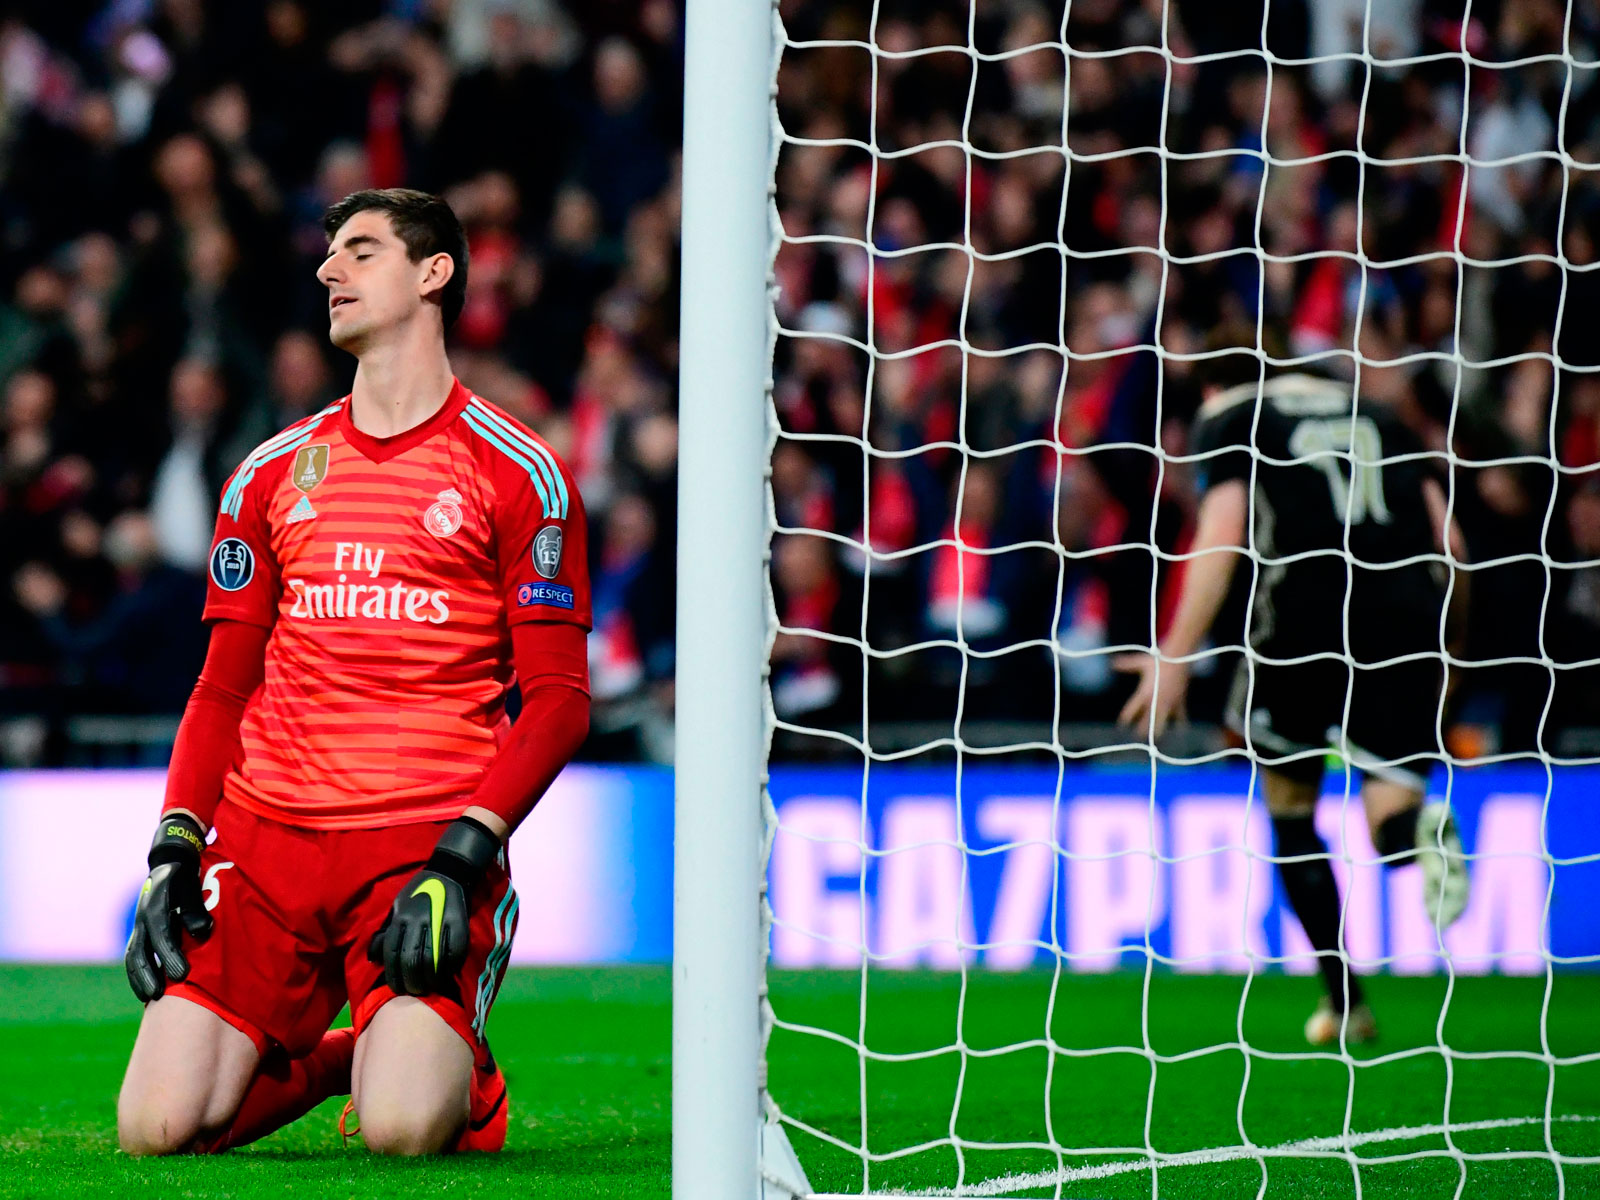 Thibaut Courtois concedes a goal for Real Madrid vs. Ajax